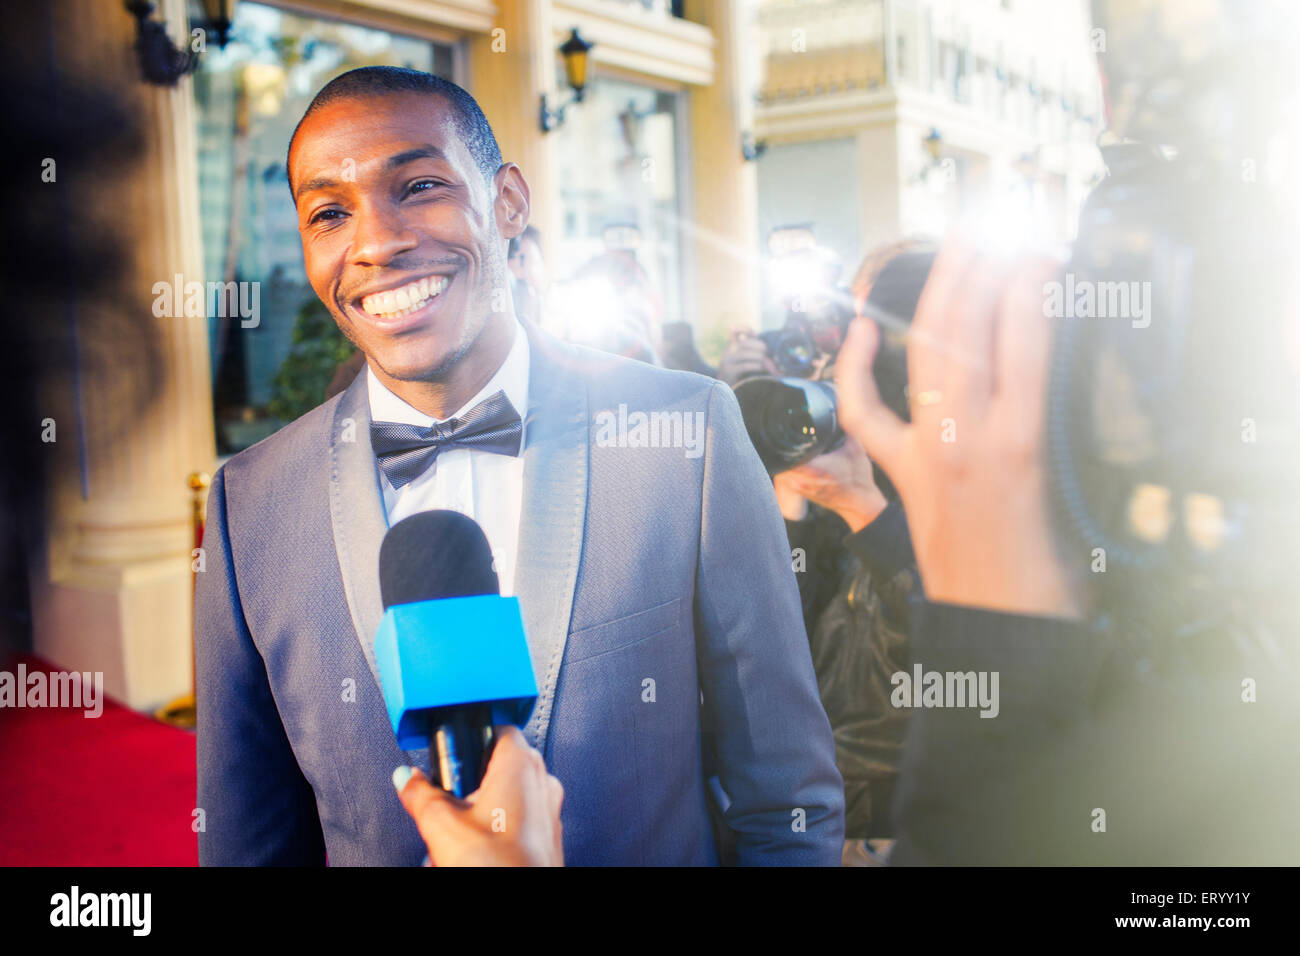 Celebrity being interviewed and photographed by paparazzi photographers - Stock Image